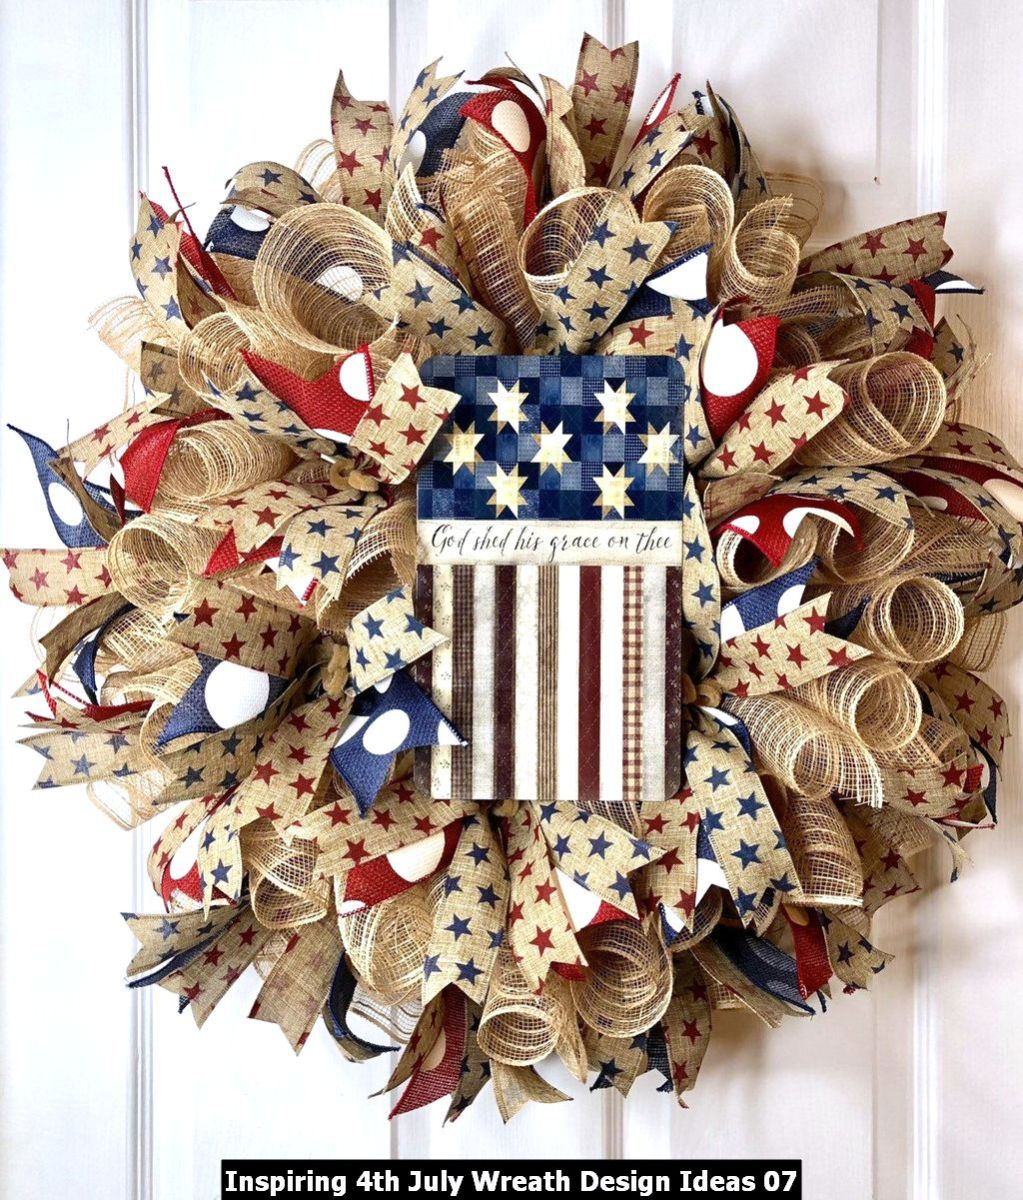 Inspiring 4th July Wreath Design Ideas 07